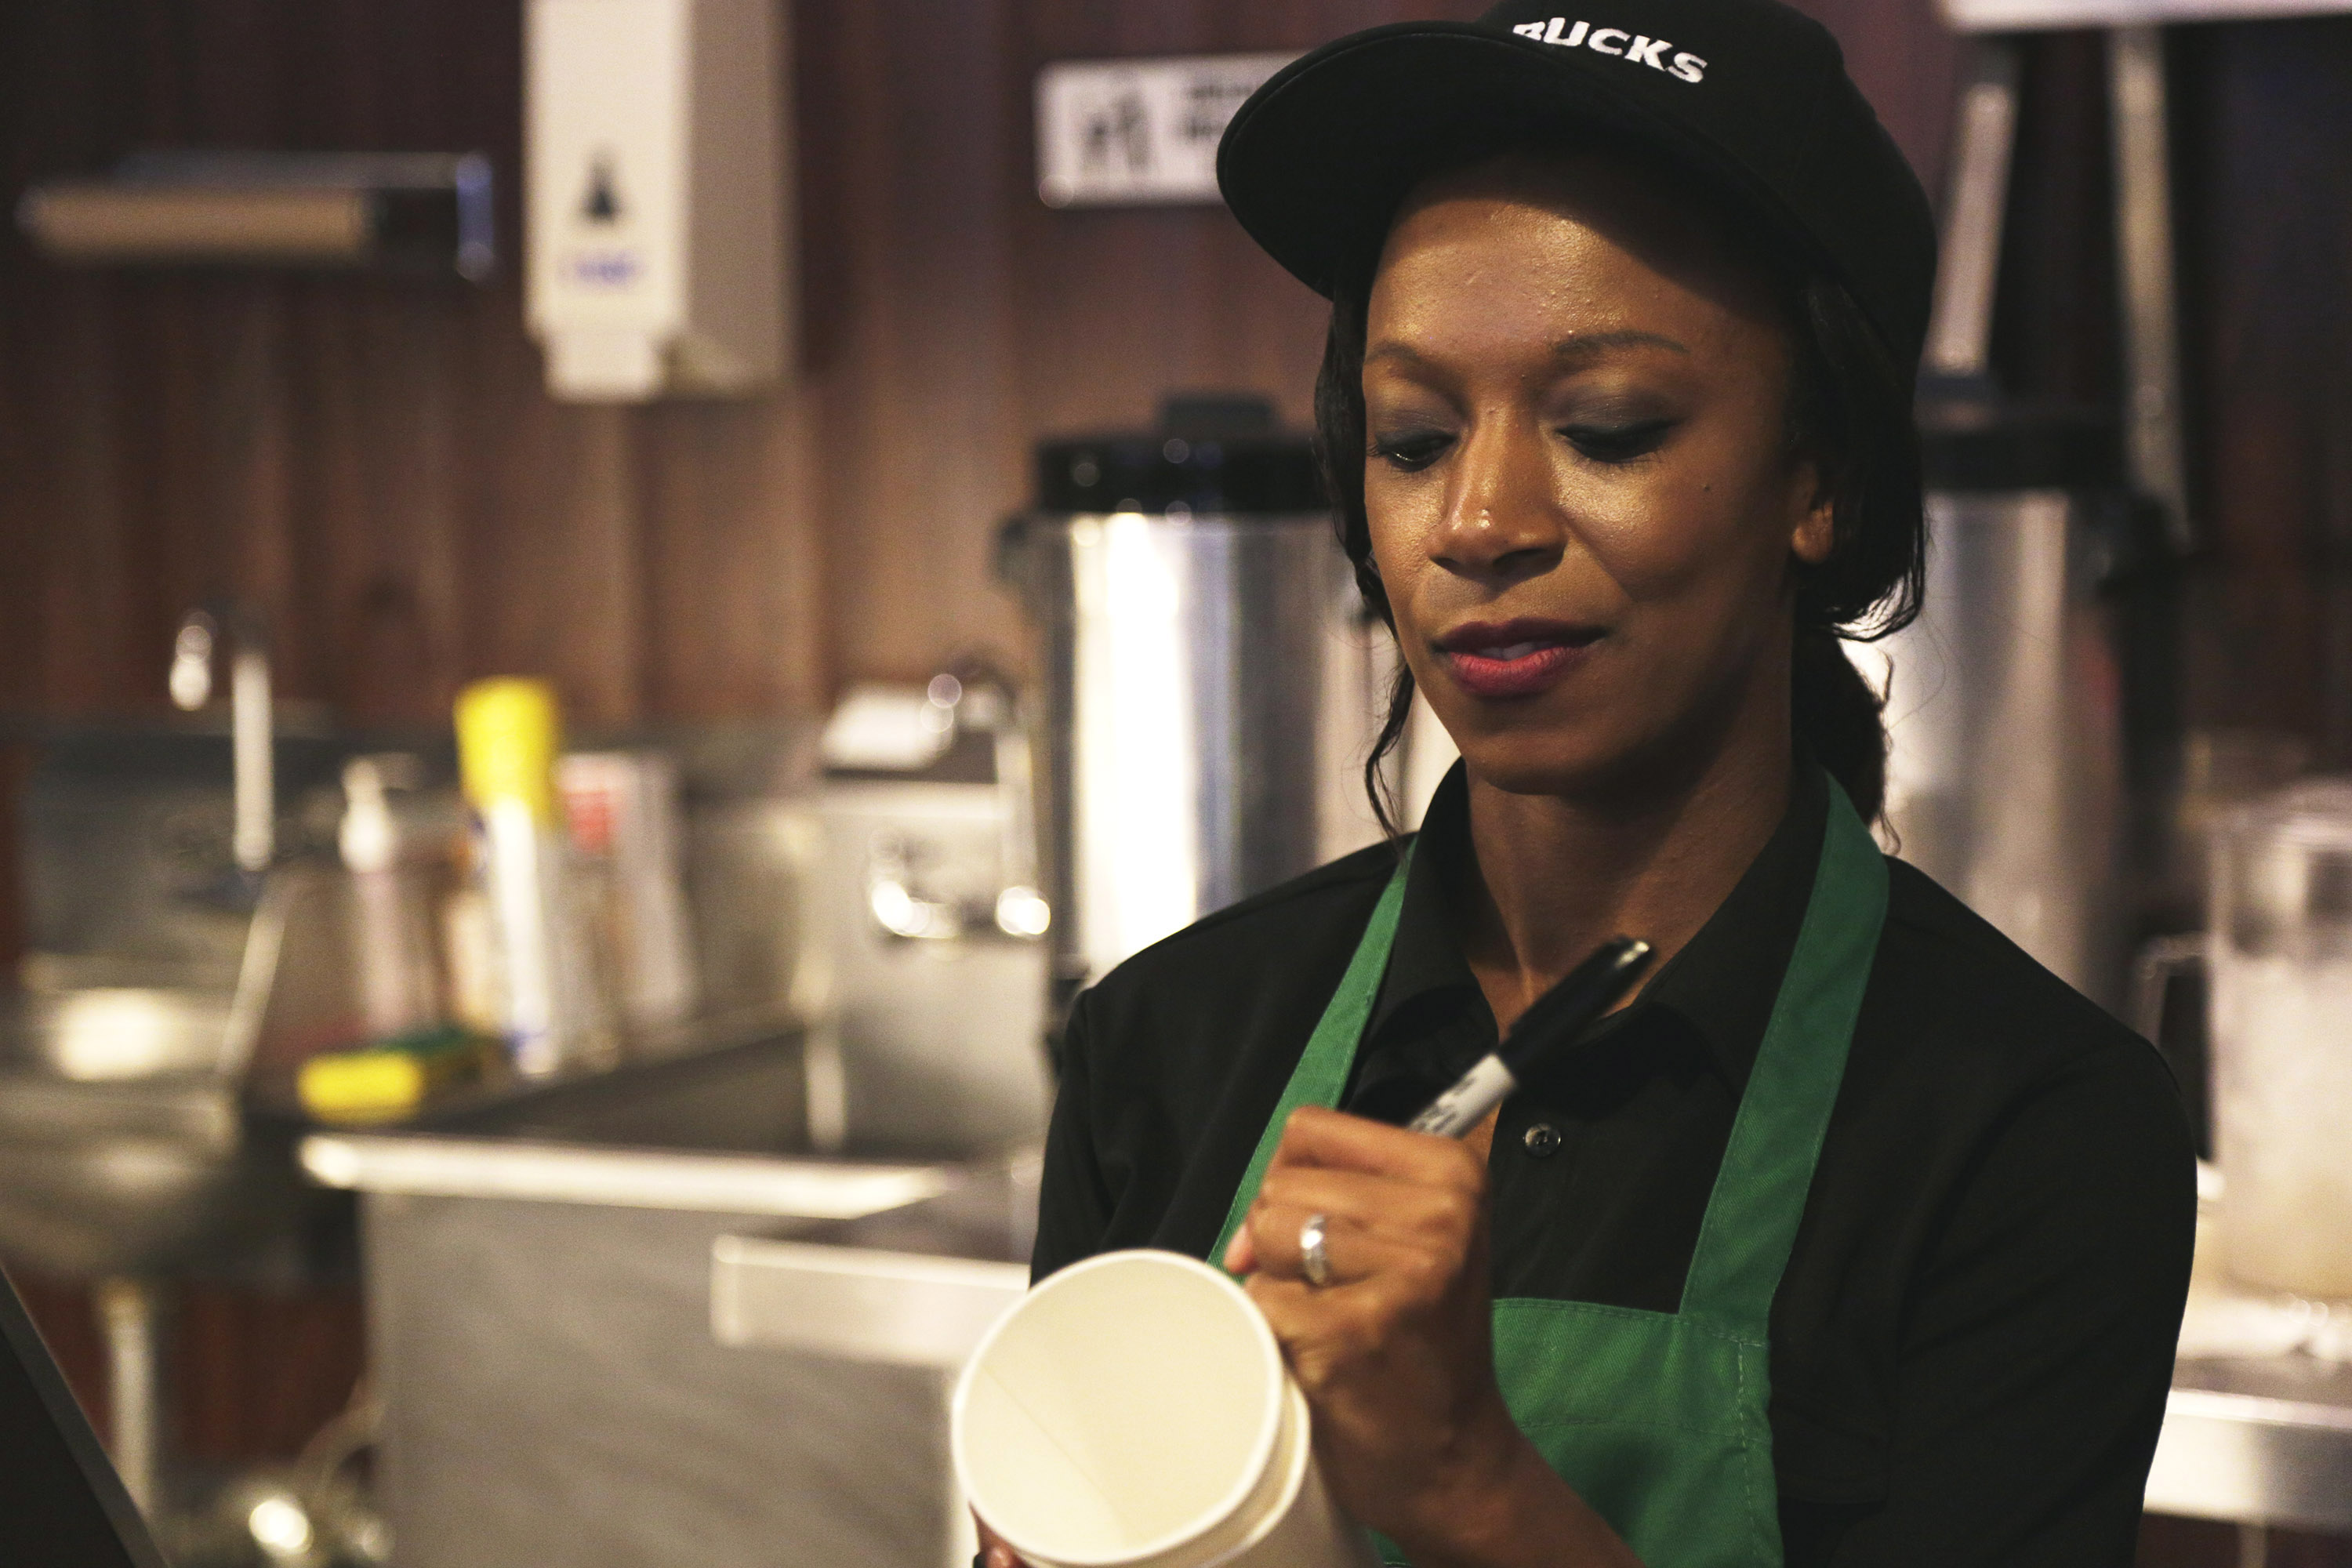 Starbucks Aims to Improve Its Baristas' Hours